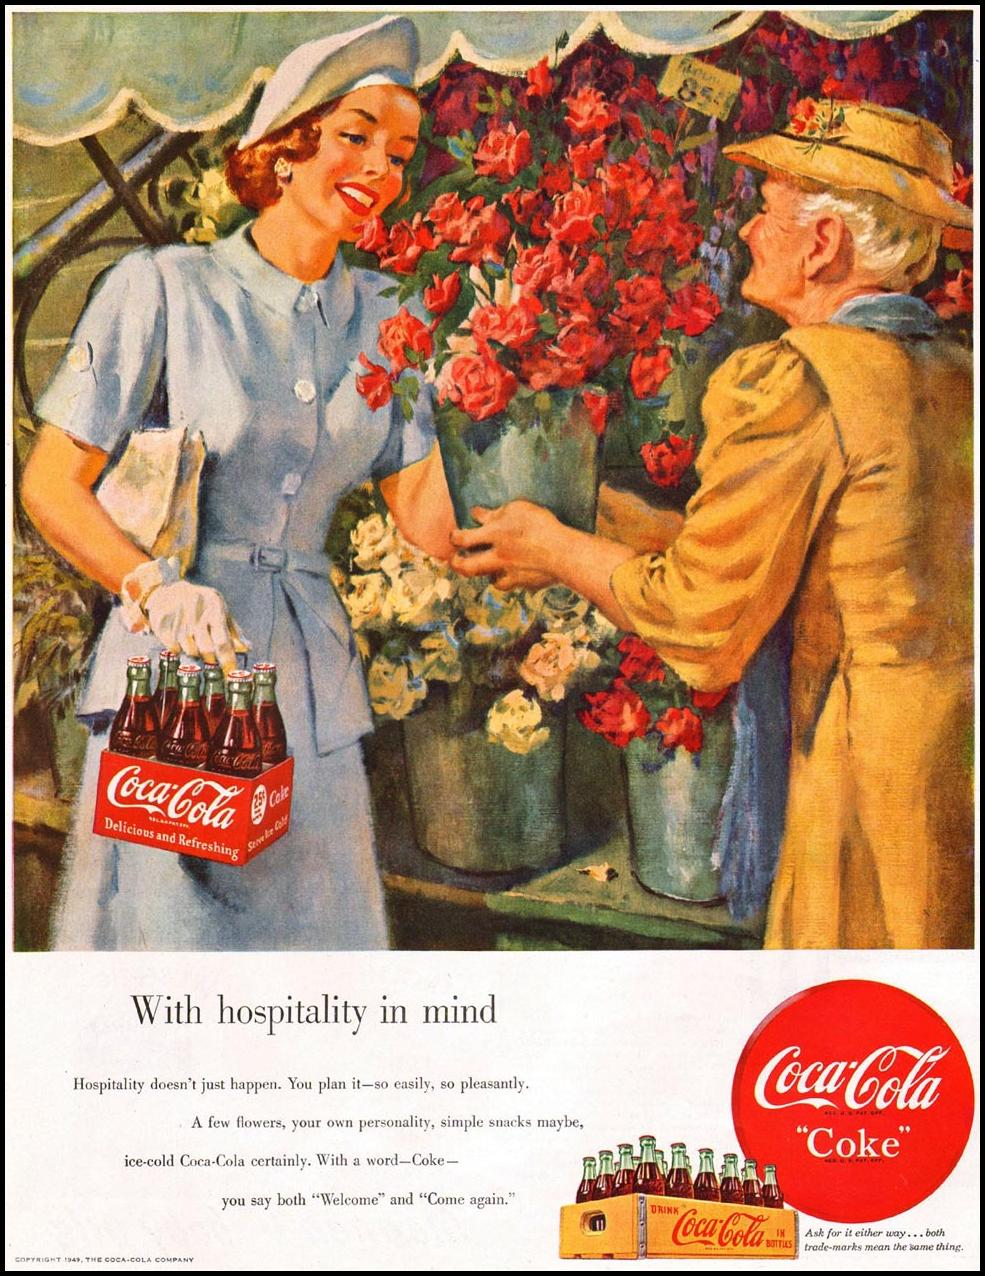 COCA-COLA LADIES' HOME JOURNAL 07/01/1949 p. 22